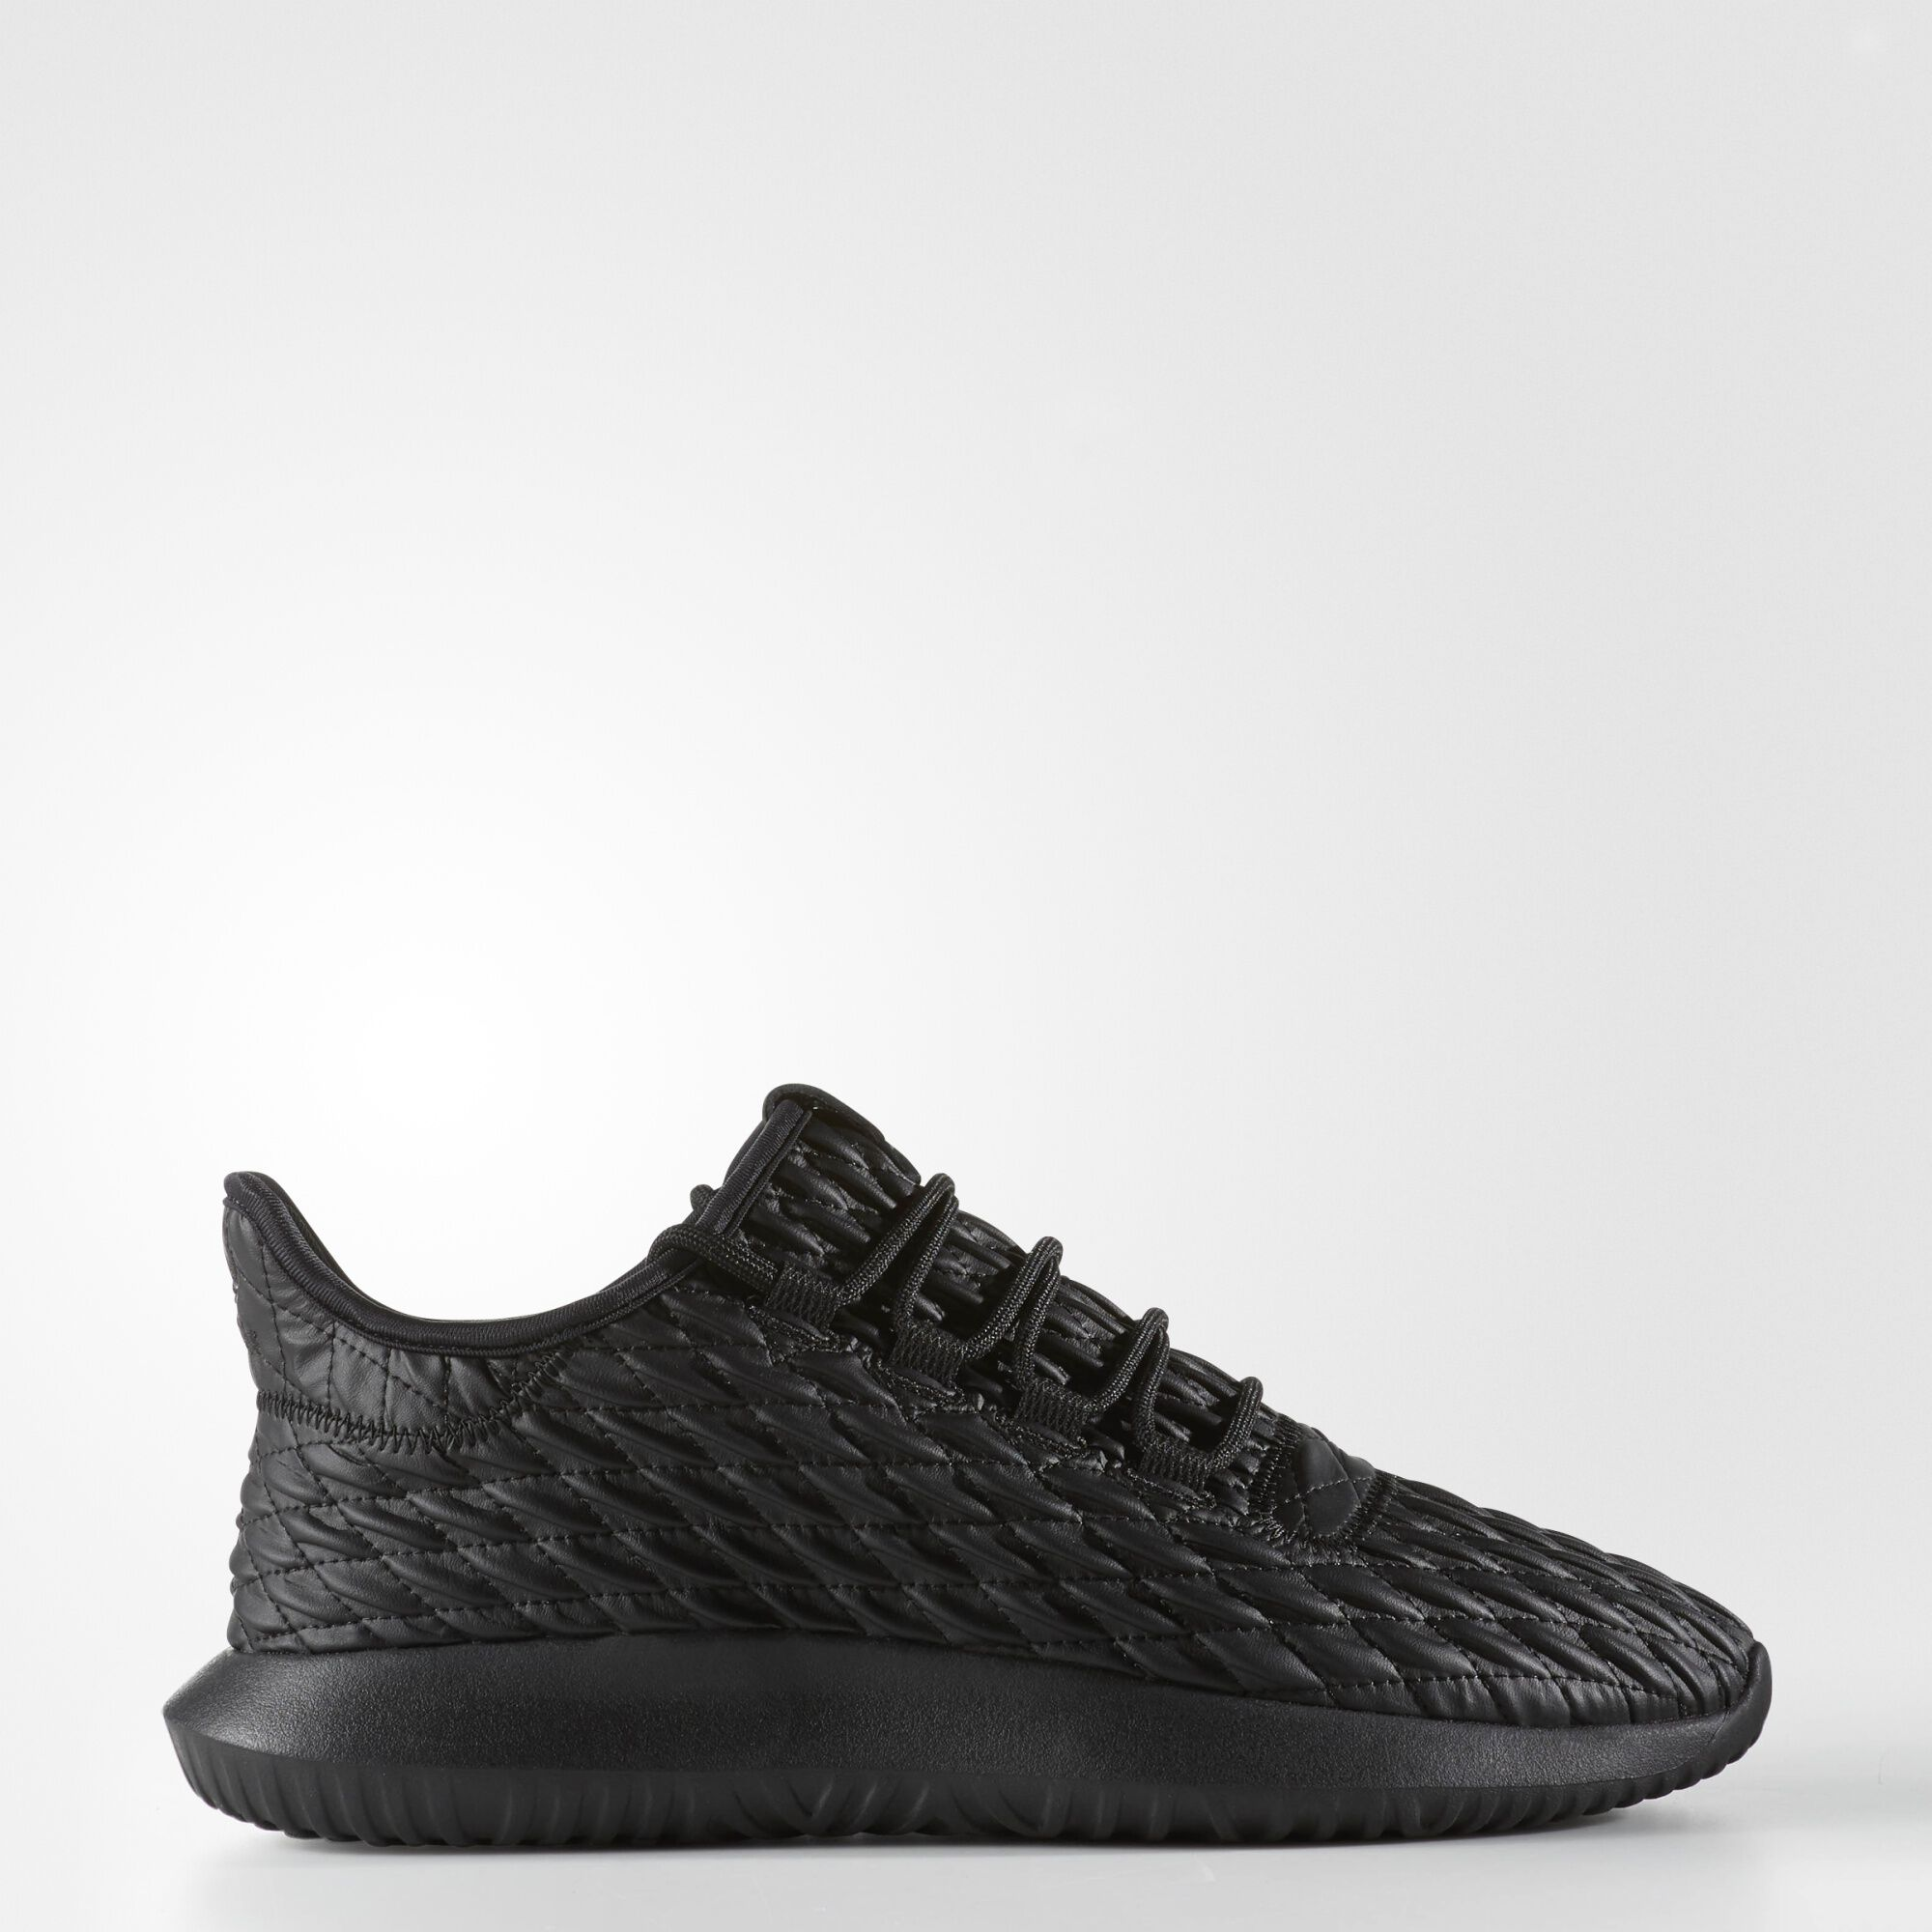 adidas Tubular Invader Strap Shoes Men's Grey Wictorsson & Partners